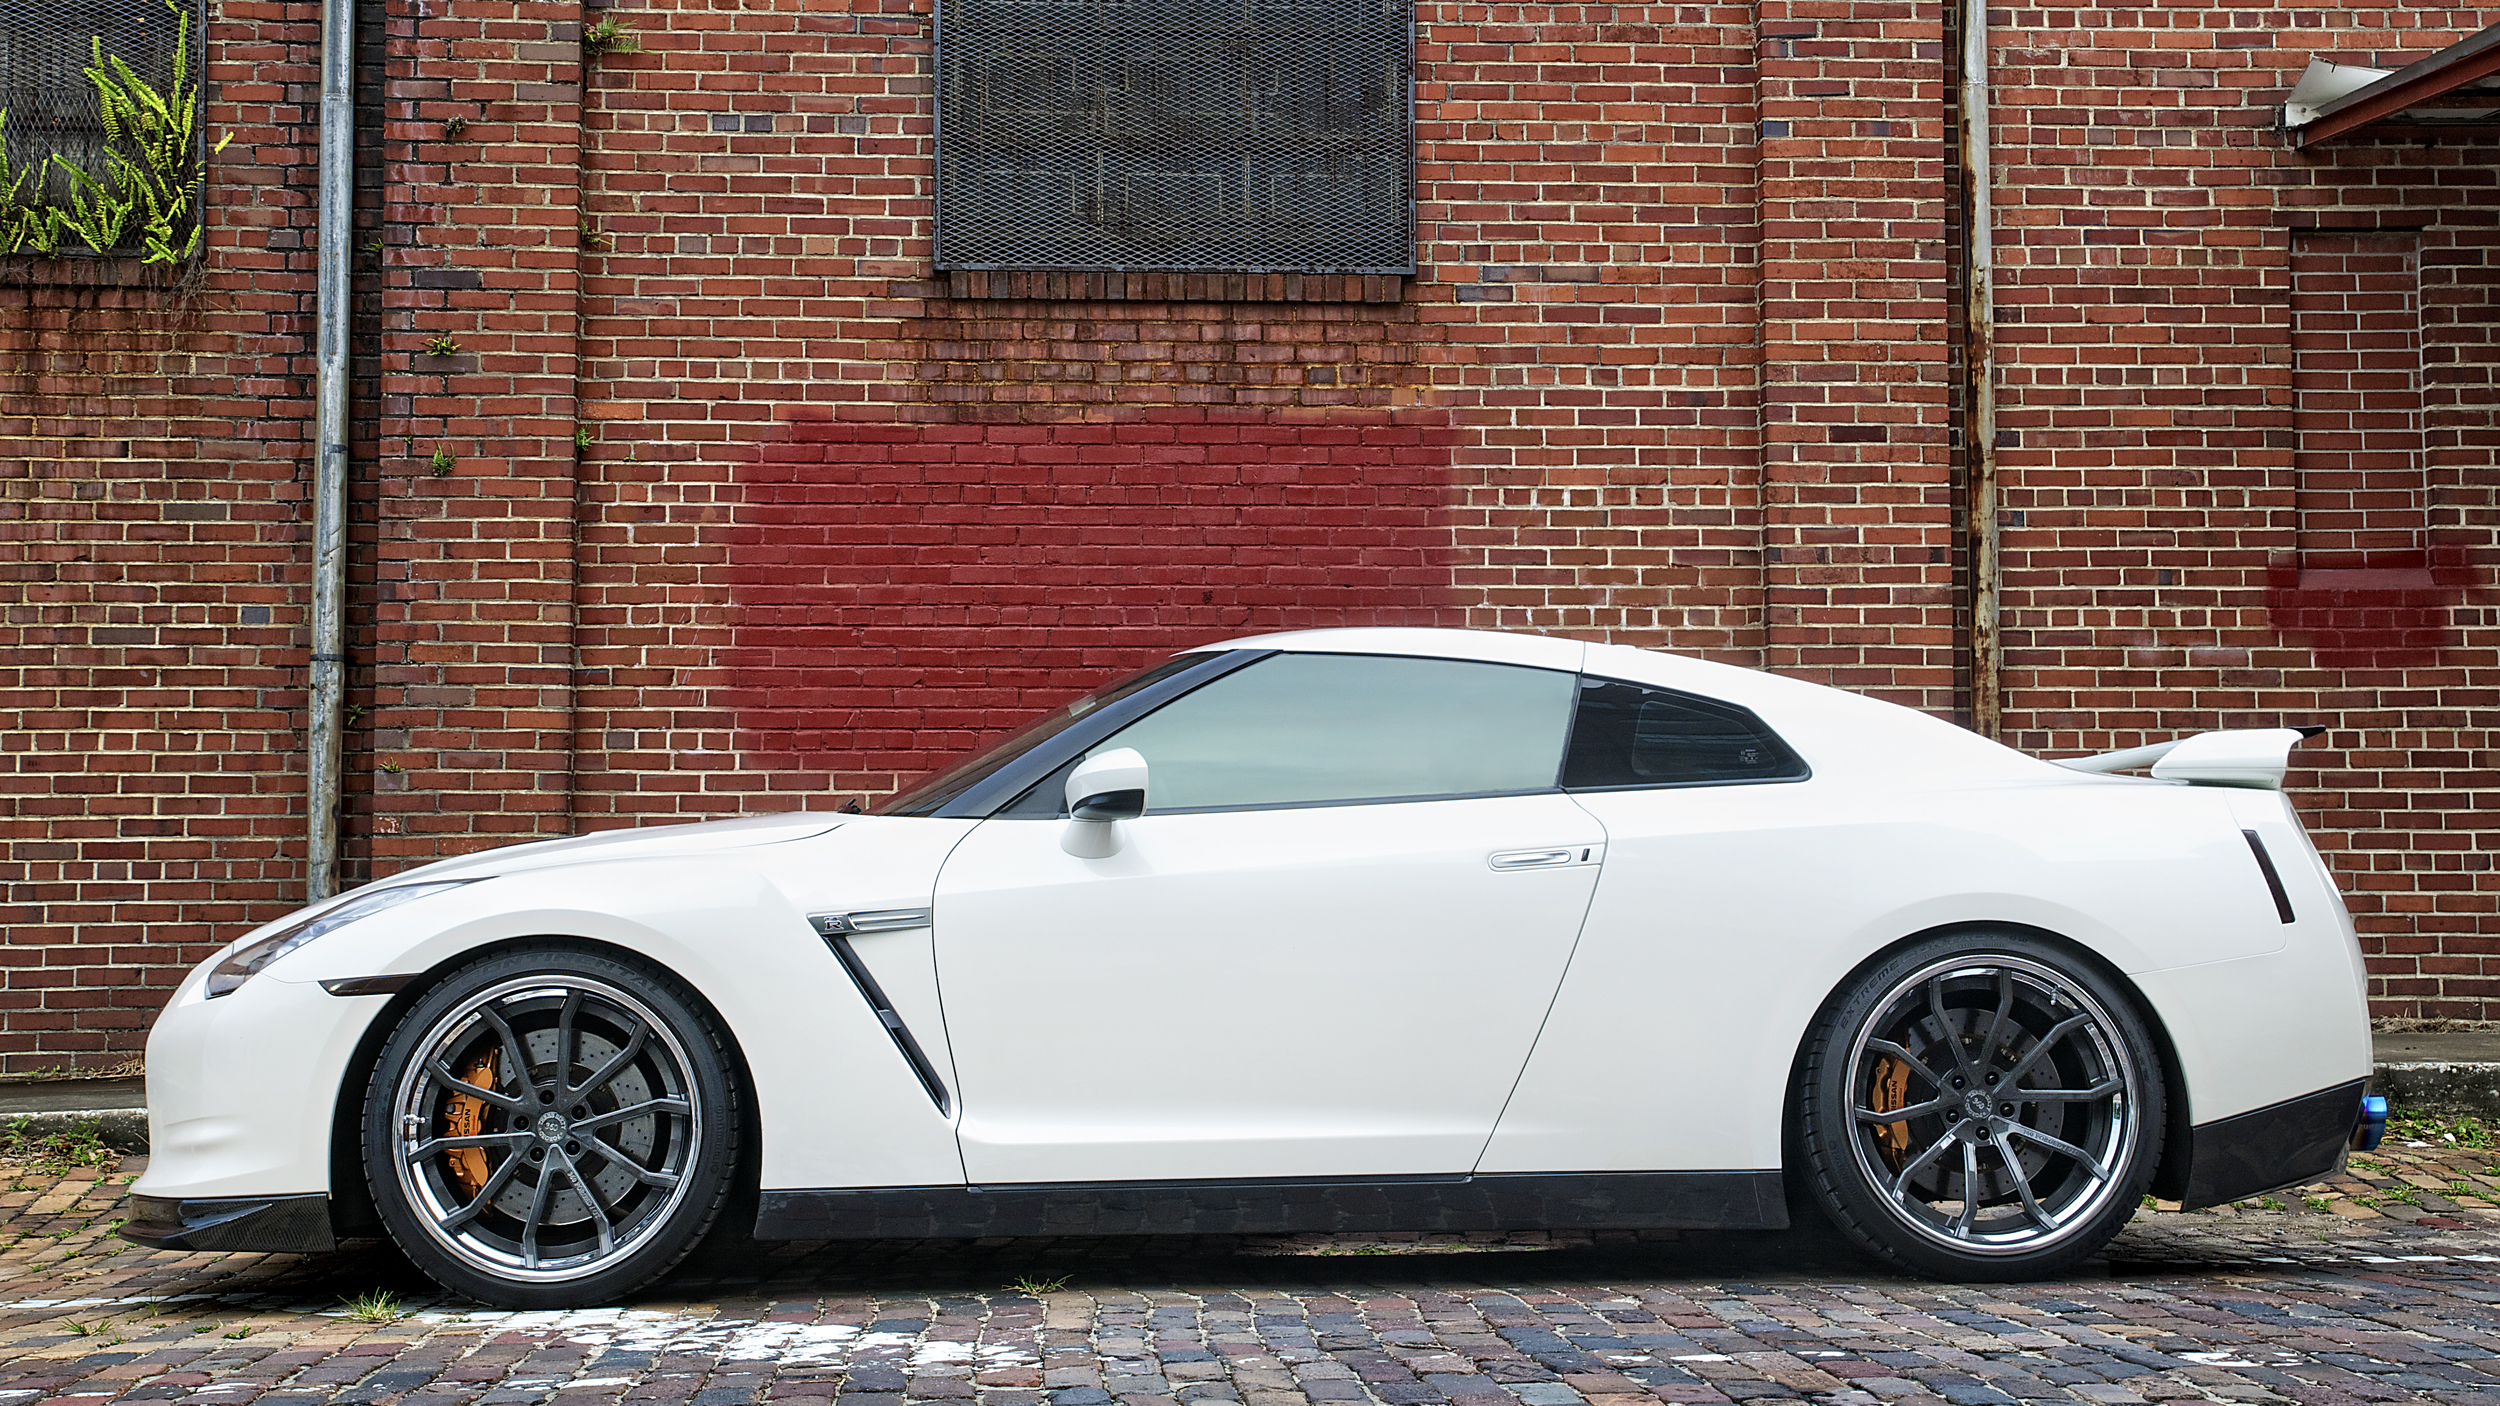 360-forged-june-04-2012-gt-r-tampa-47668.jpg